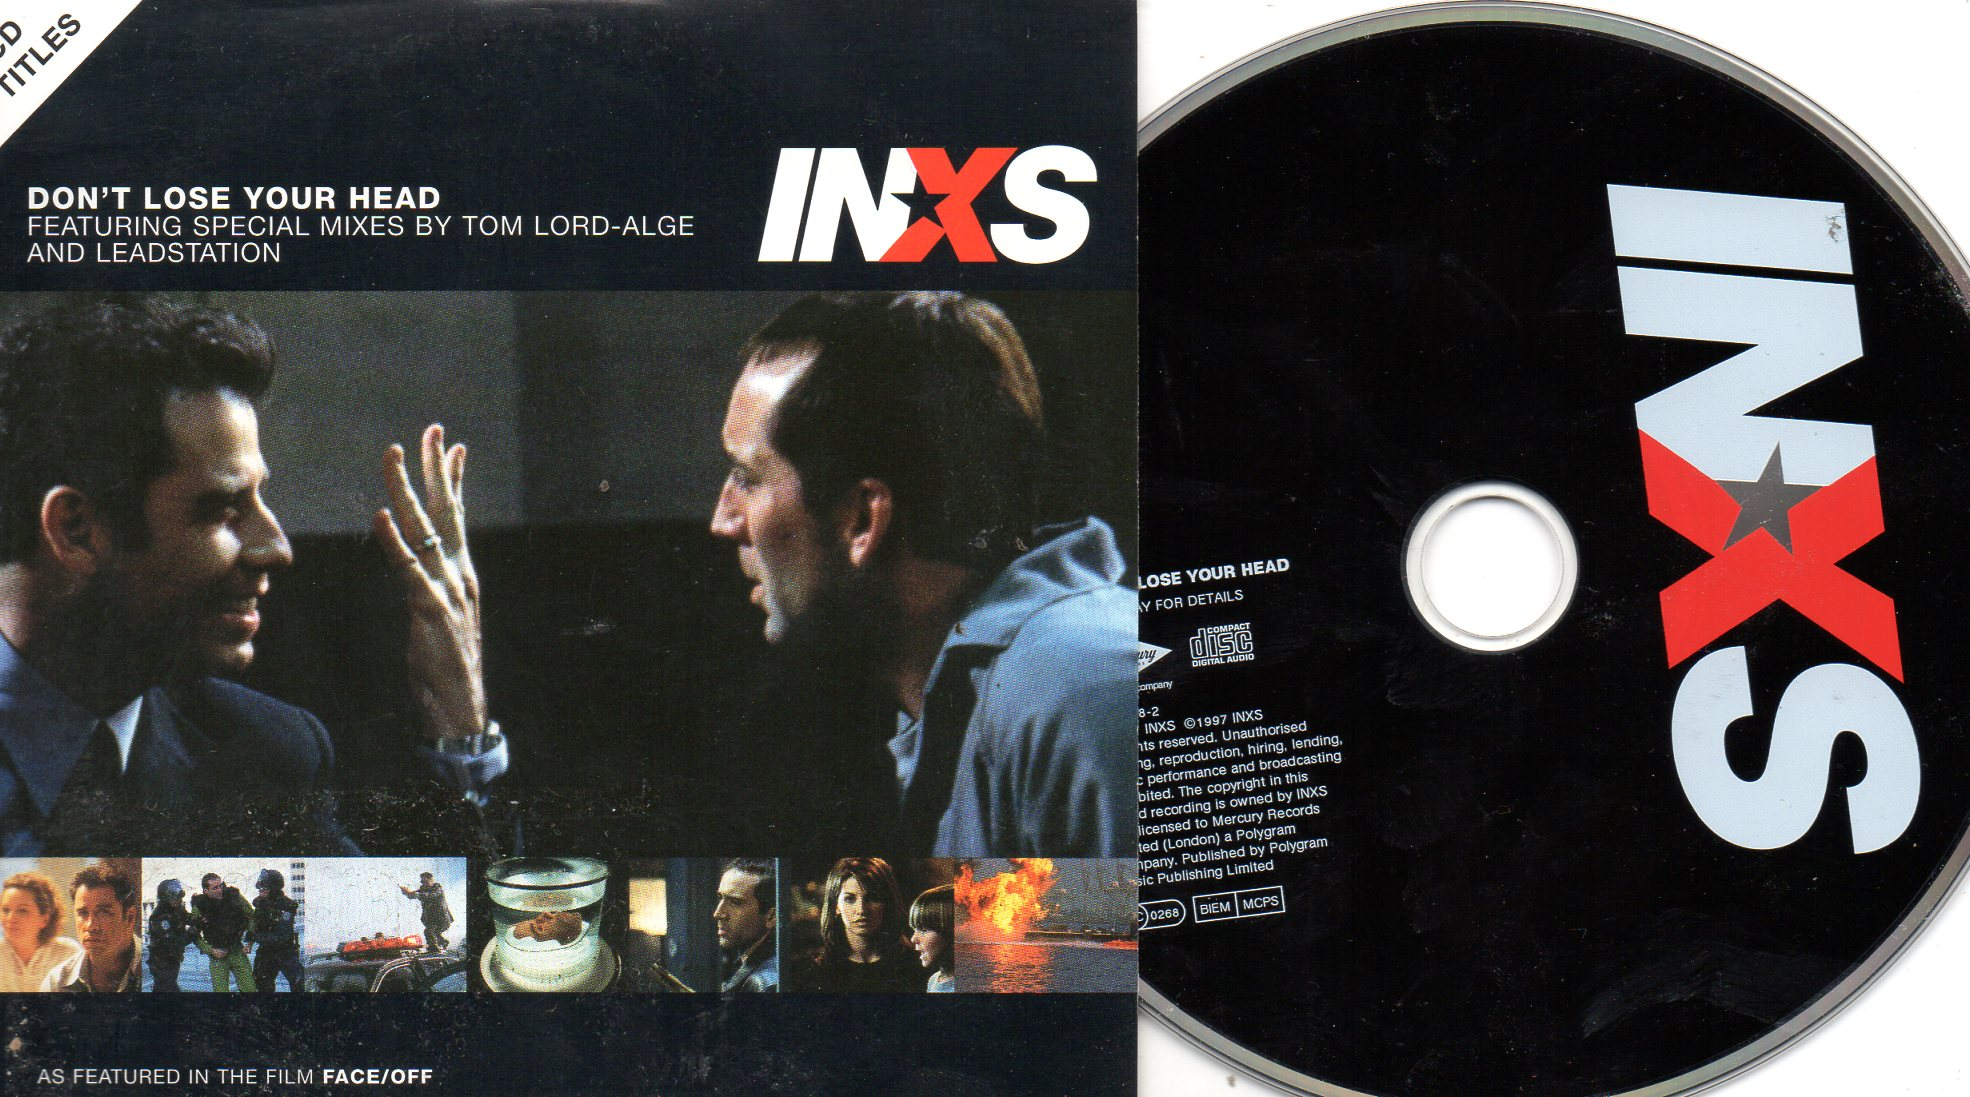 INXS - Don't Lose Your Head 2-track Card Sleeve Soundtrack Face / Off